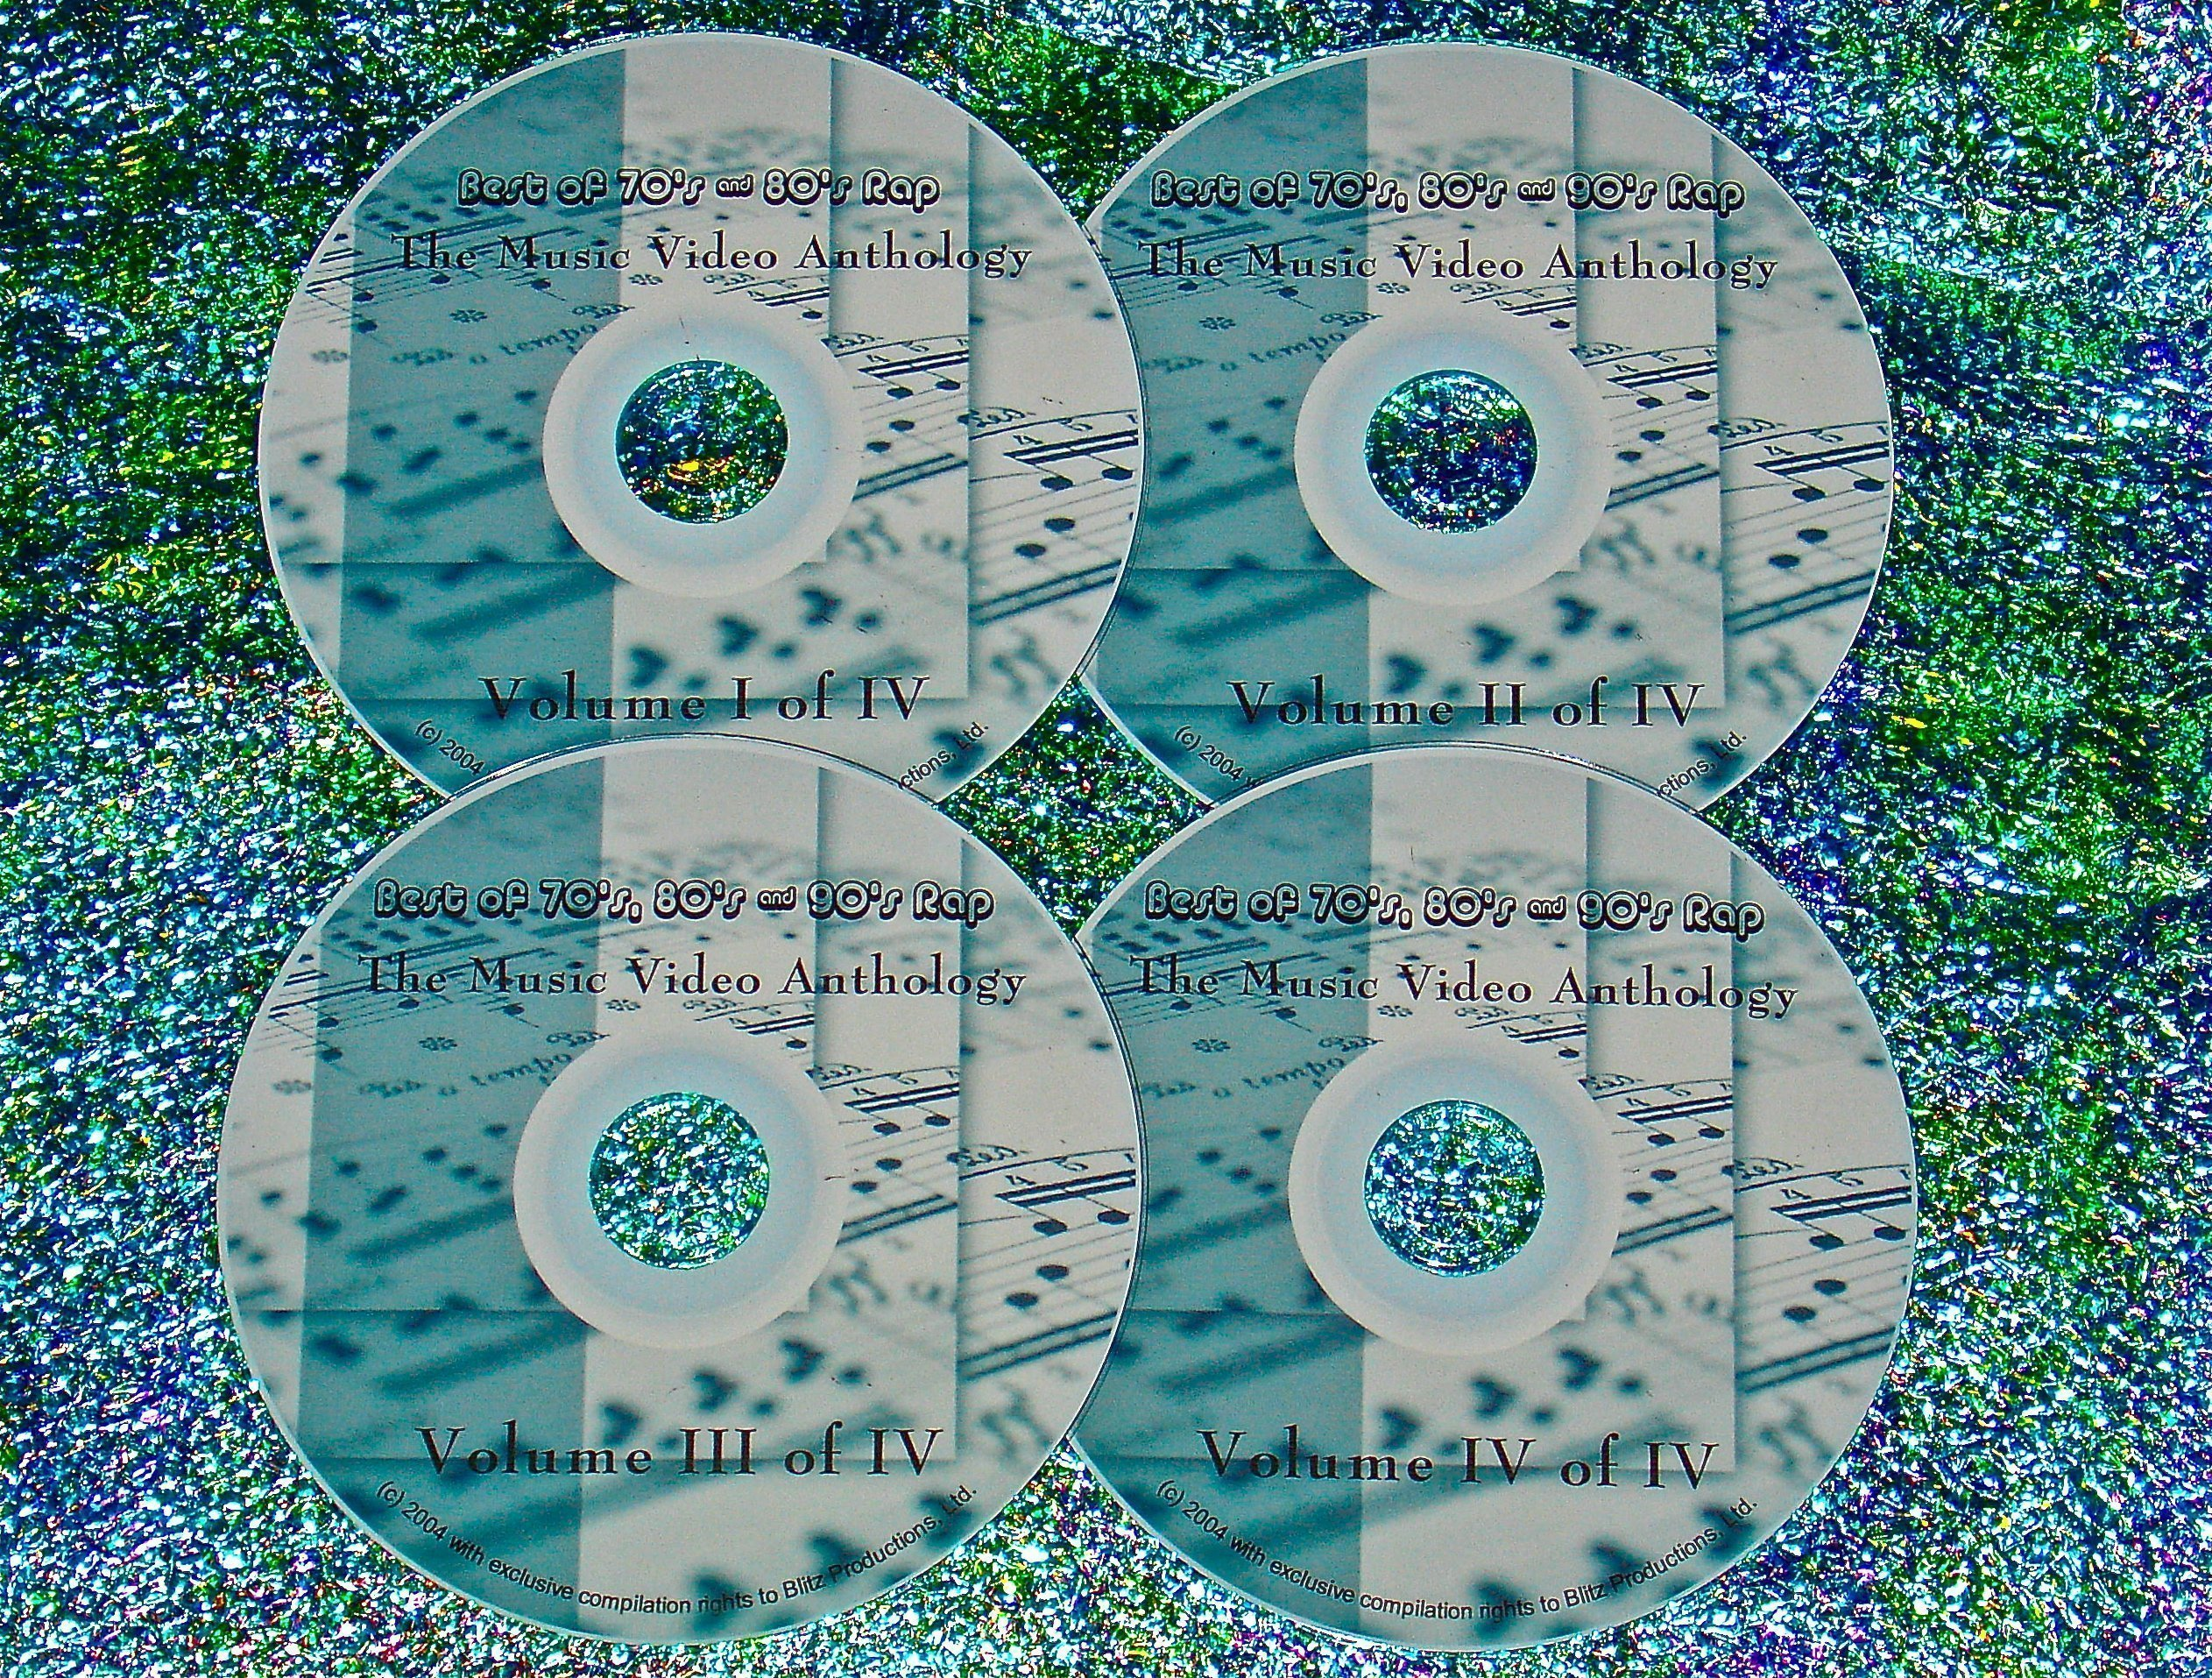 Best of 70's, 80's & 90's Rap Hip Hop Music Video Anthology Volume I to IV  (4 DVD Set 8 Hrs ) (Various Artists-A Tribe Called Boys Eric B  And Rakim